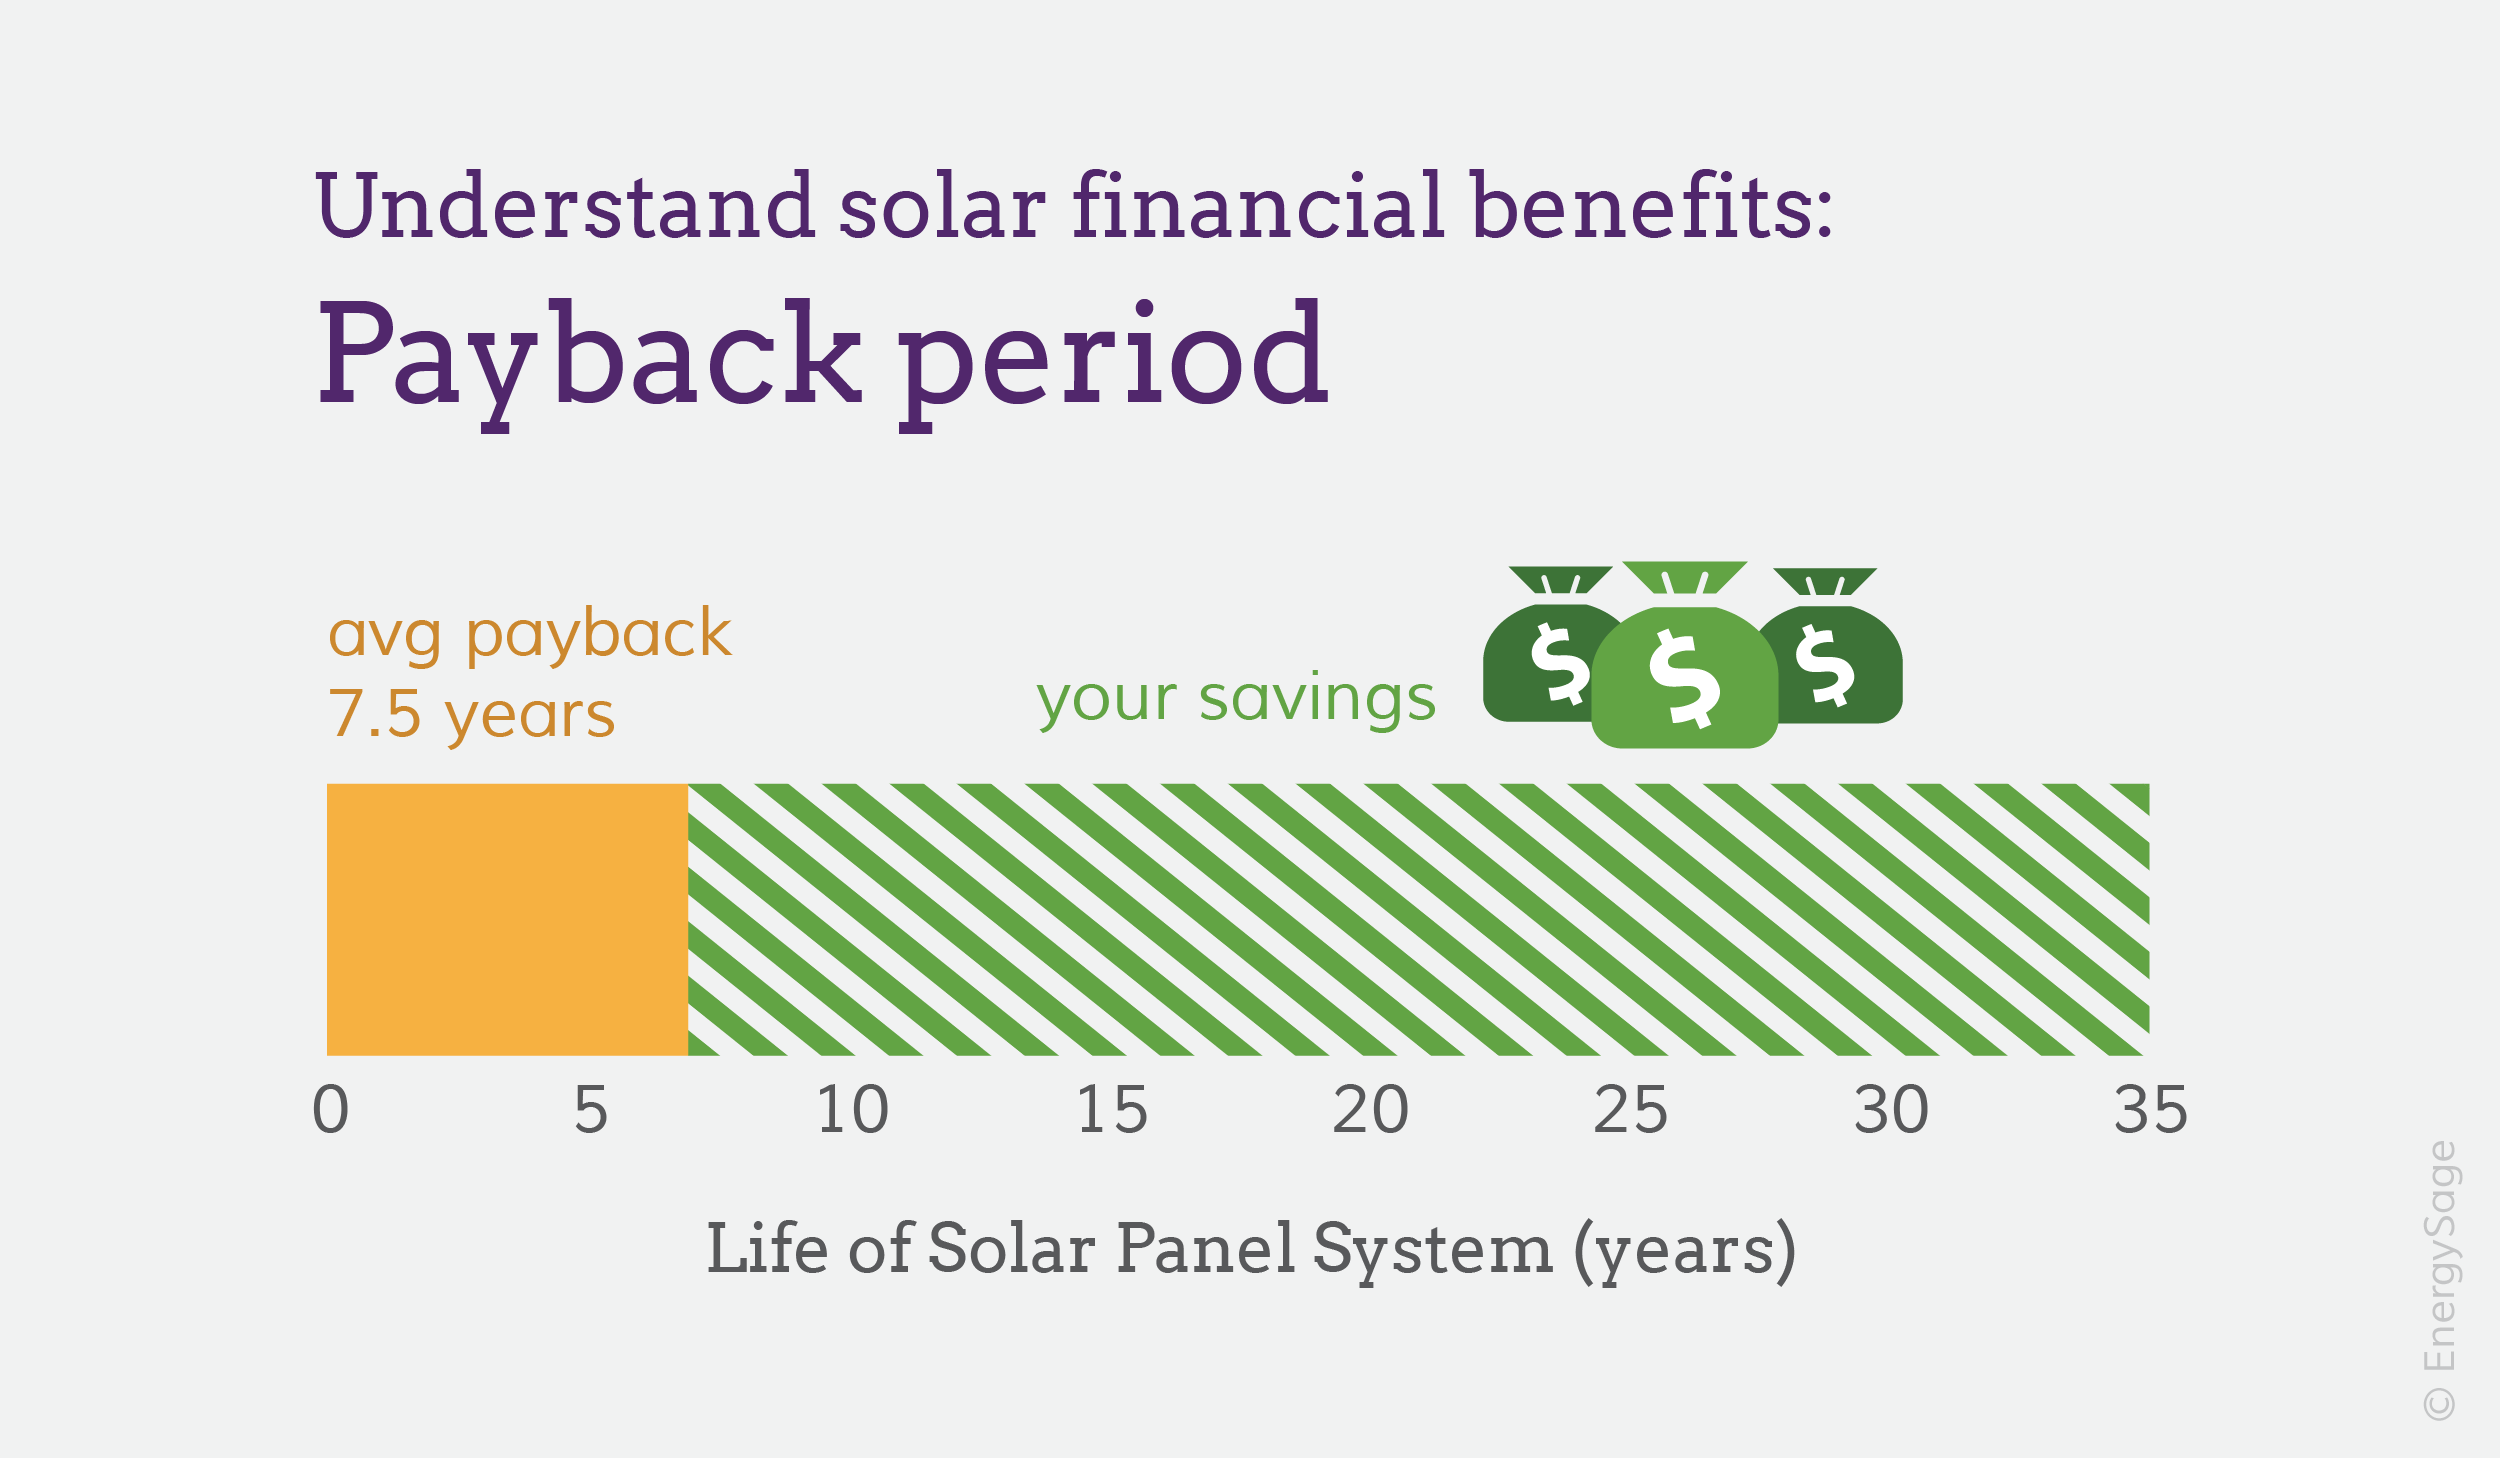 Understanding the solar panel payback period